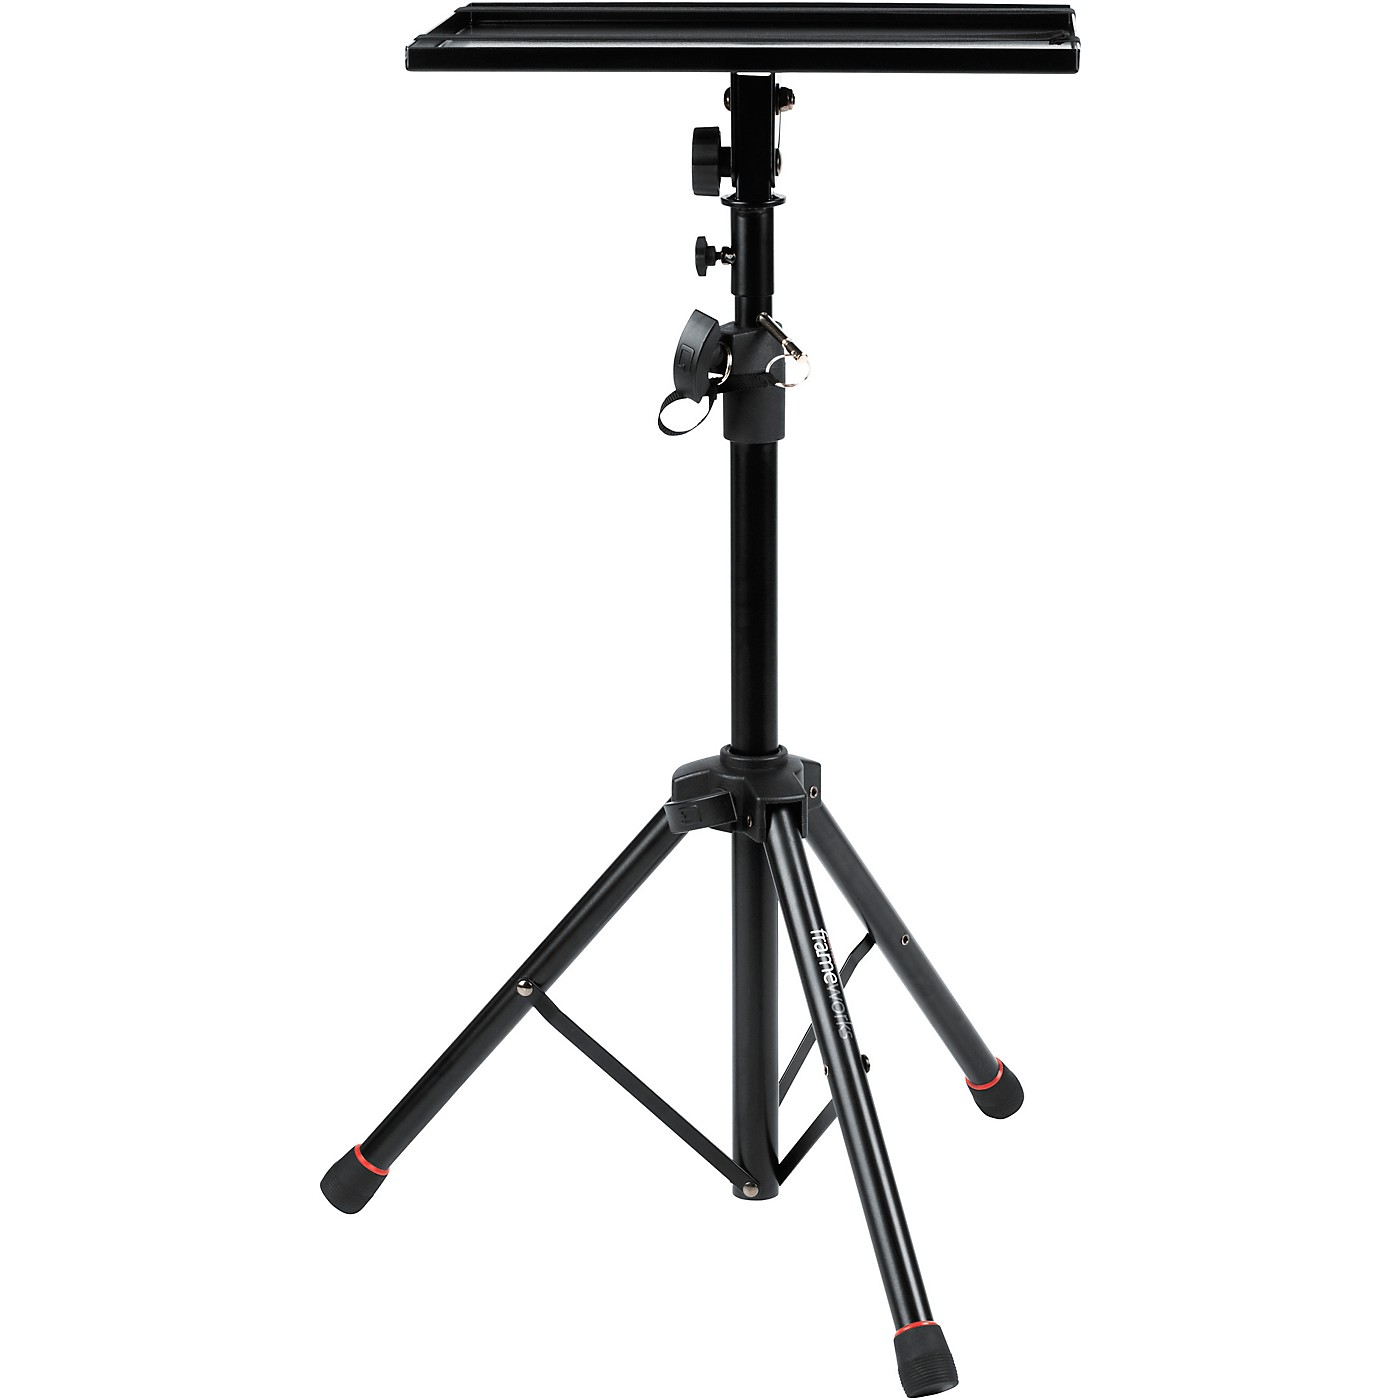 Gator Laptop & Projector Tripod Stand with Height & Tilt Adjustment thumbnail